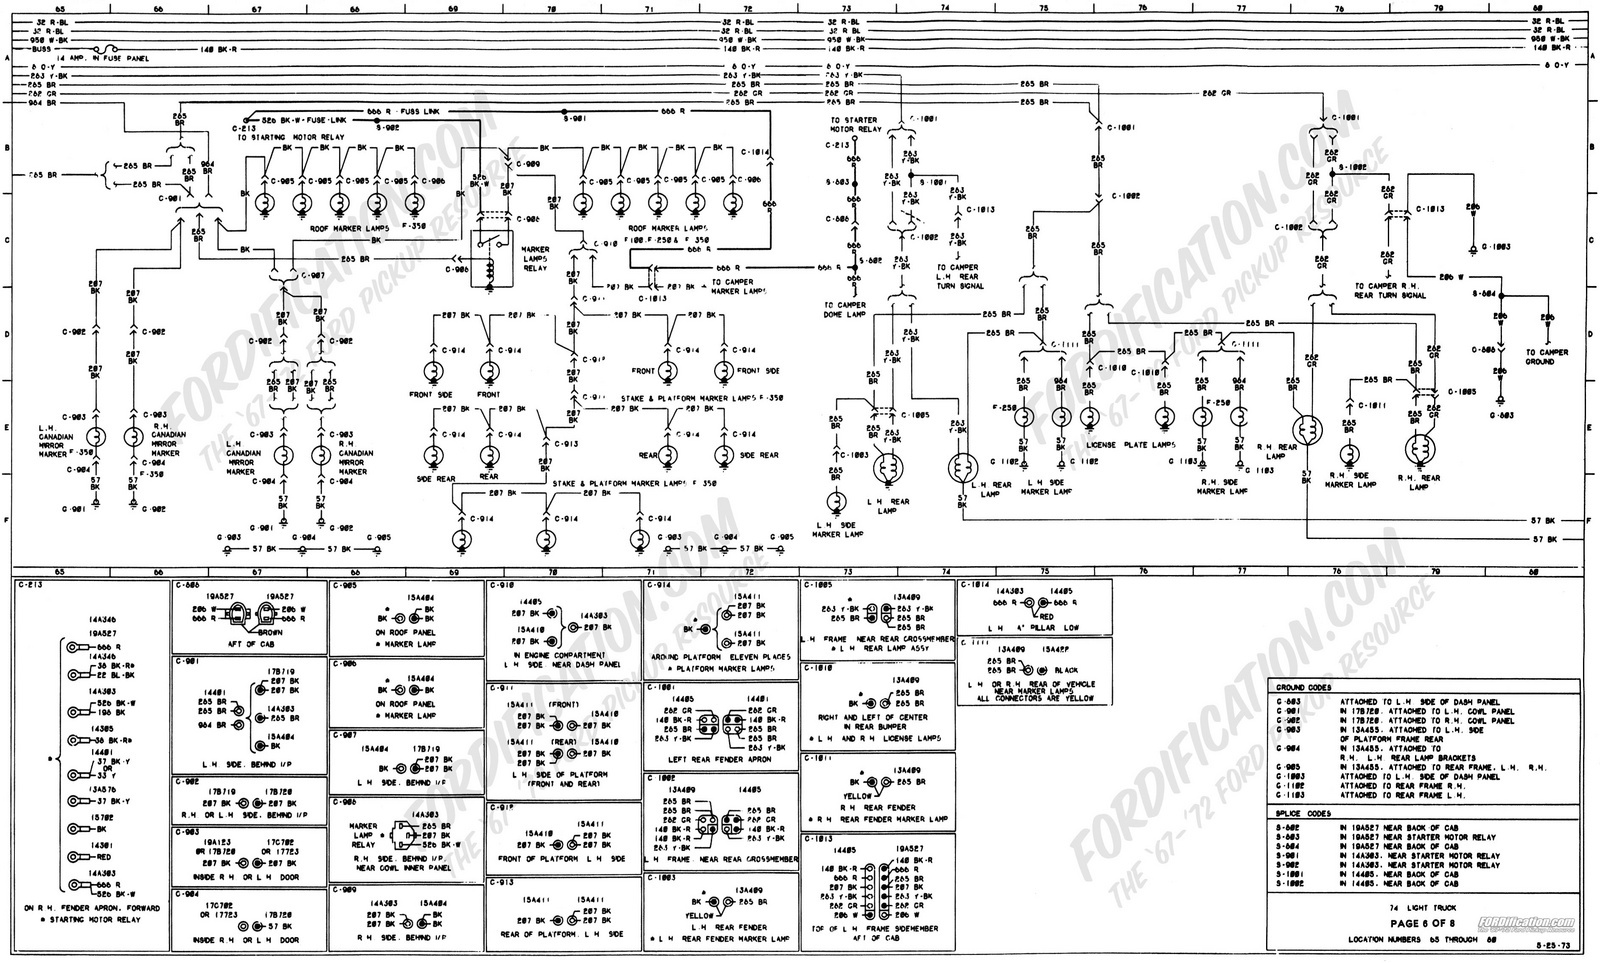 hight resolution of 1979 f100 wiring diagram wiring diagram name 1979 ford f100 ignition switch wiring diagram 1979 f100 wiring diagram